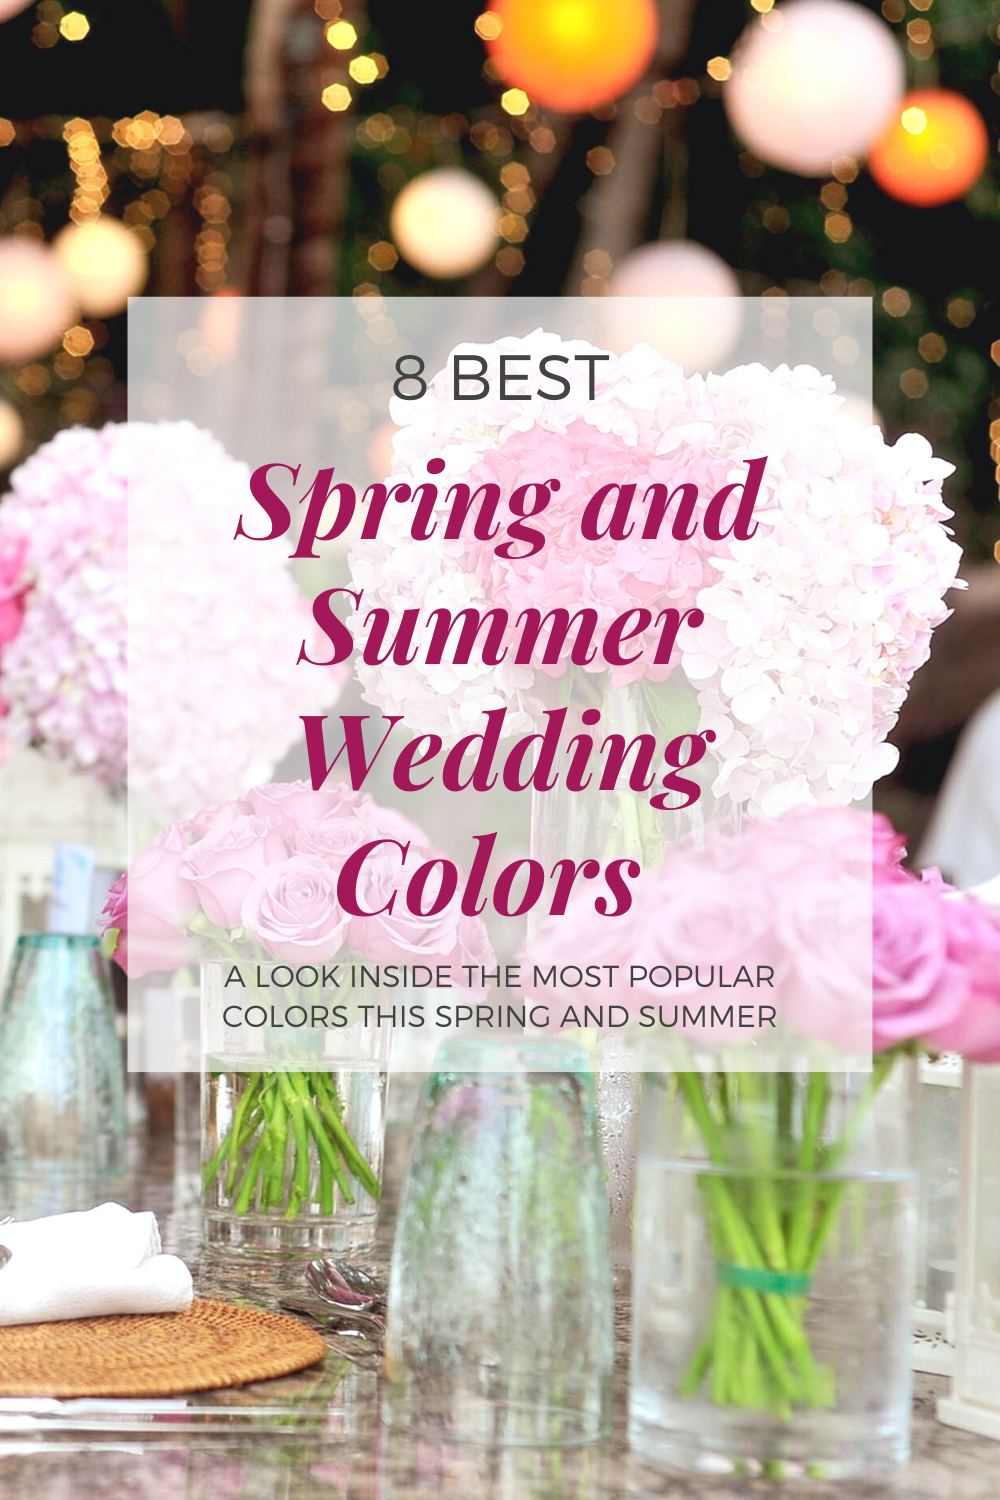 8 BEST SPRING/SUMMER WEDDING COLOR IDEAS FOR 2021